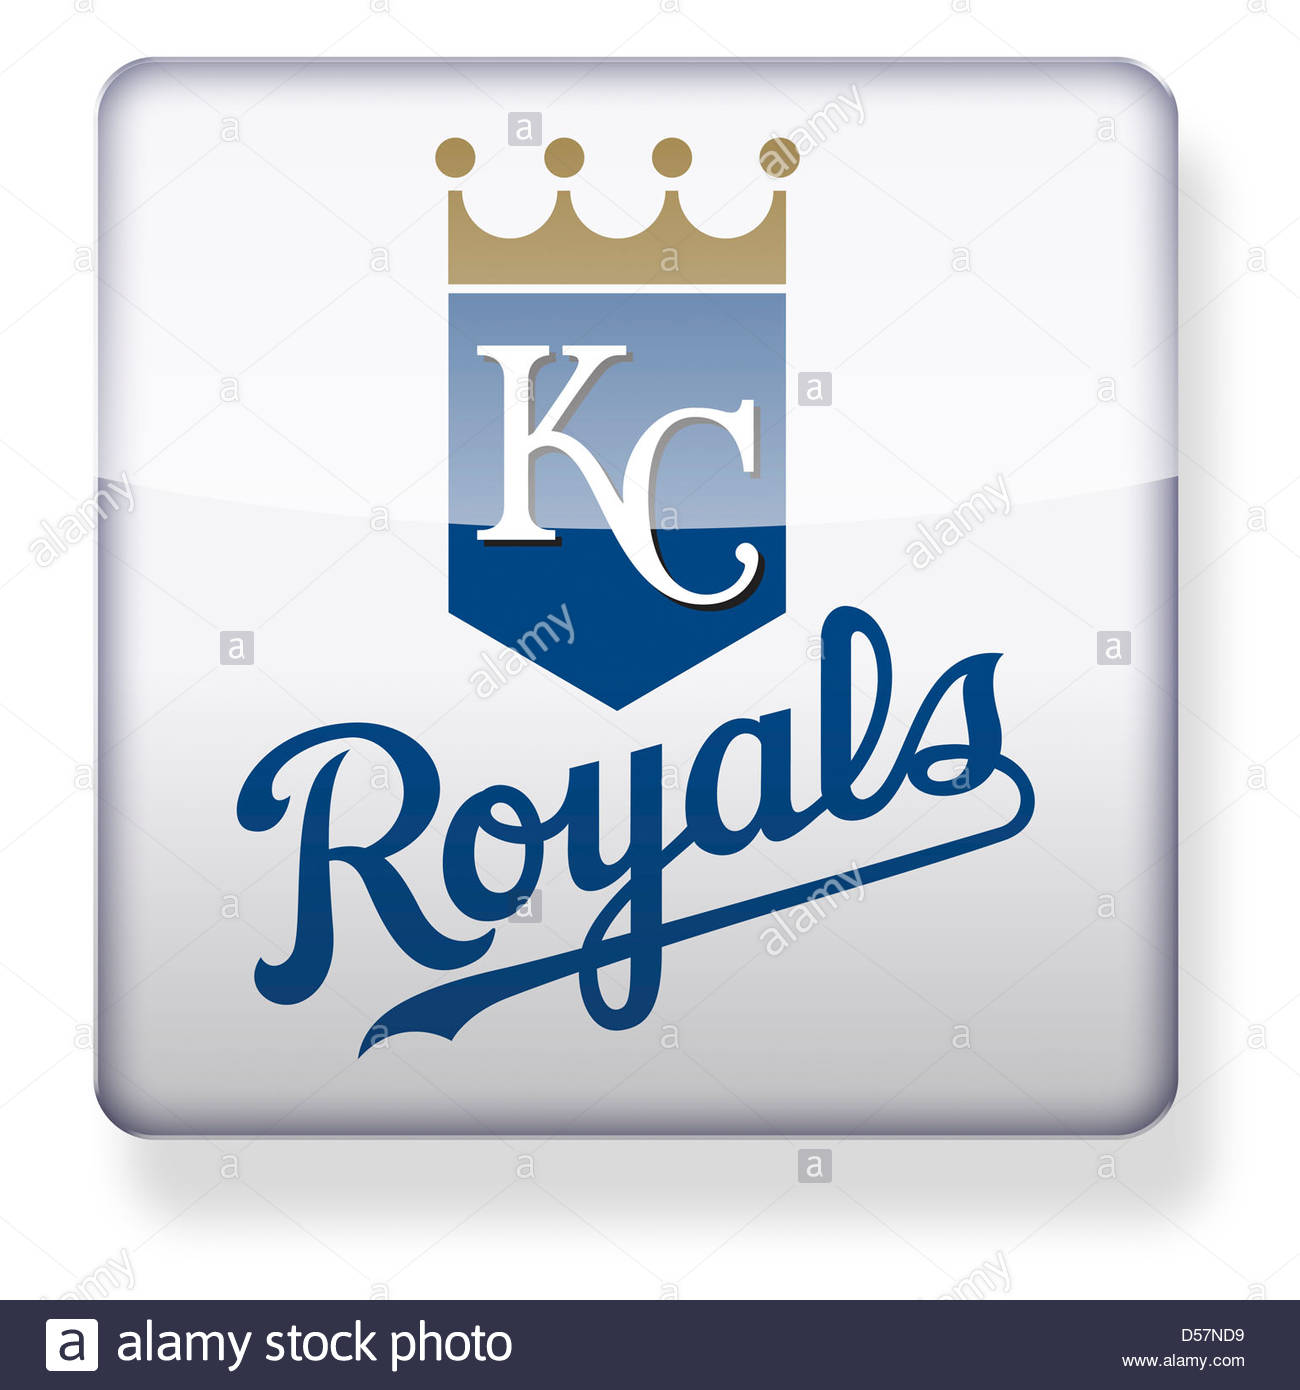 Kansas City Royals logo as an app icon. Clipping path included. - Stock Image